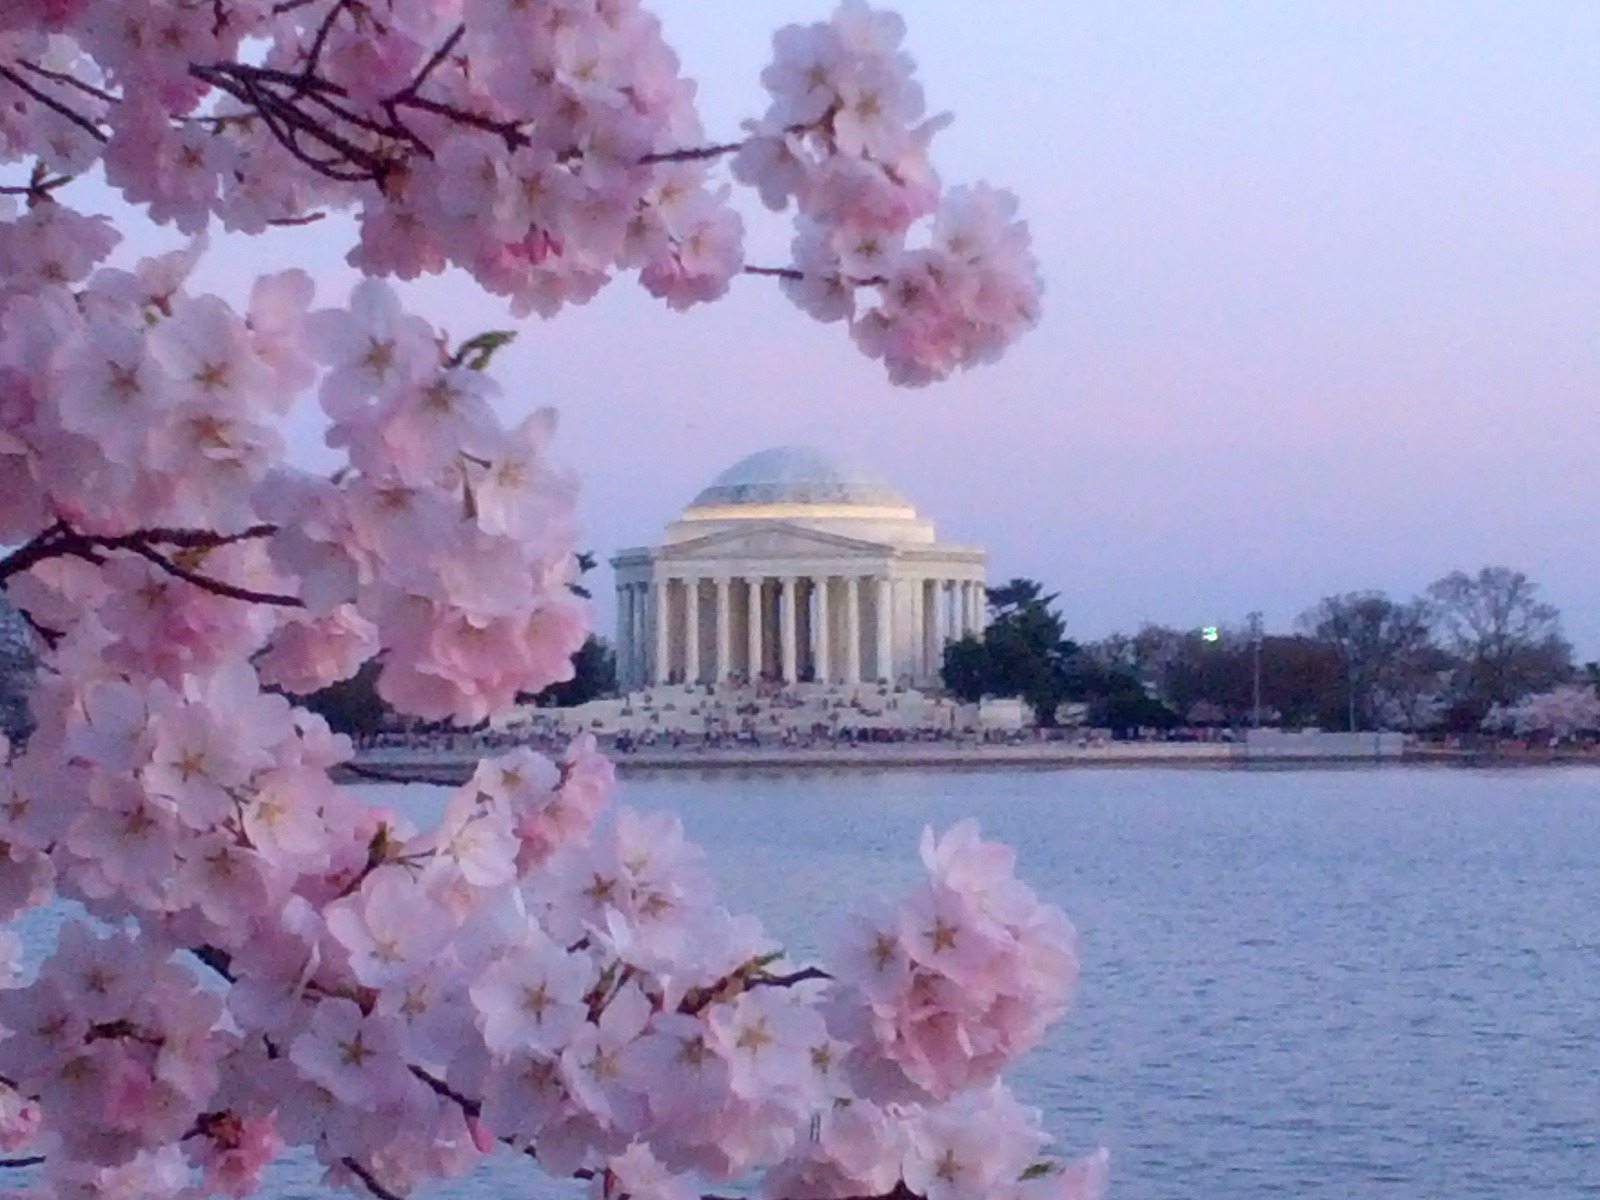 Blossoming cherry trees and the Jefferson Memorial at the Tidal Basin in Washington, DC